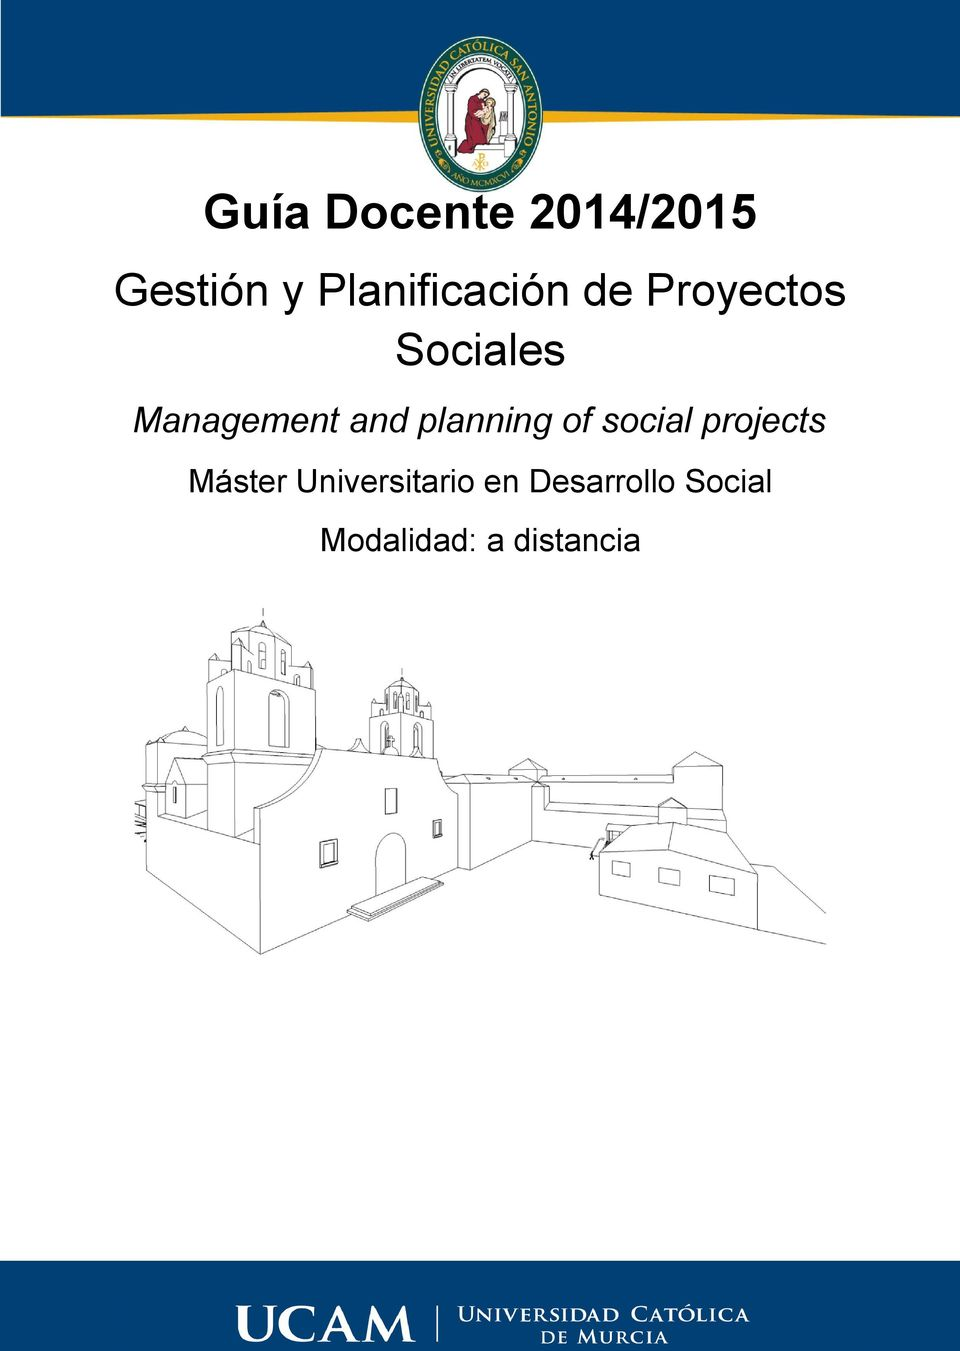 Management and planning of social projects